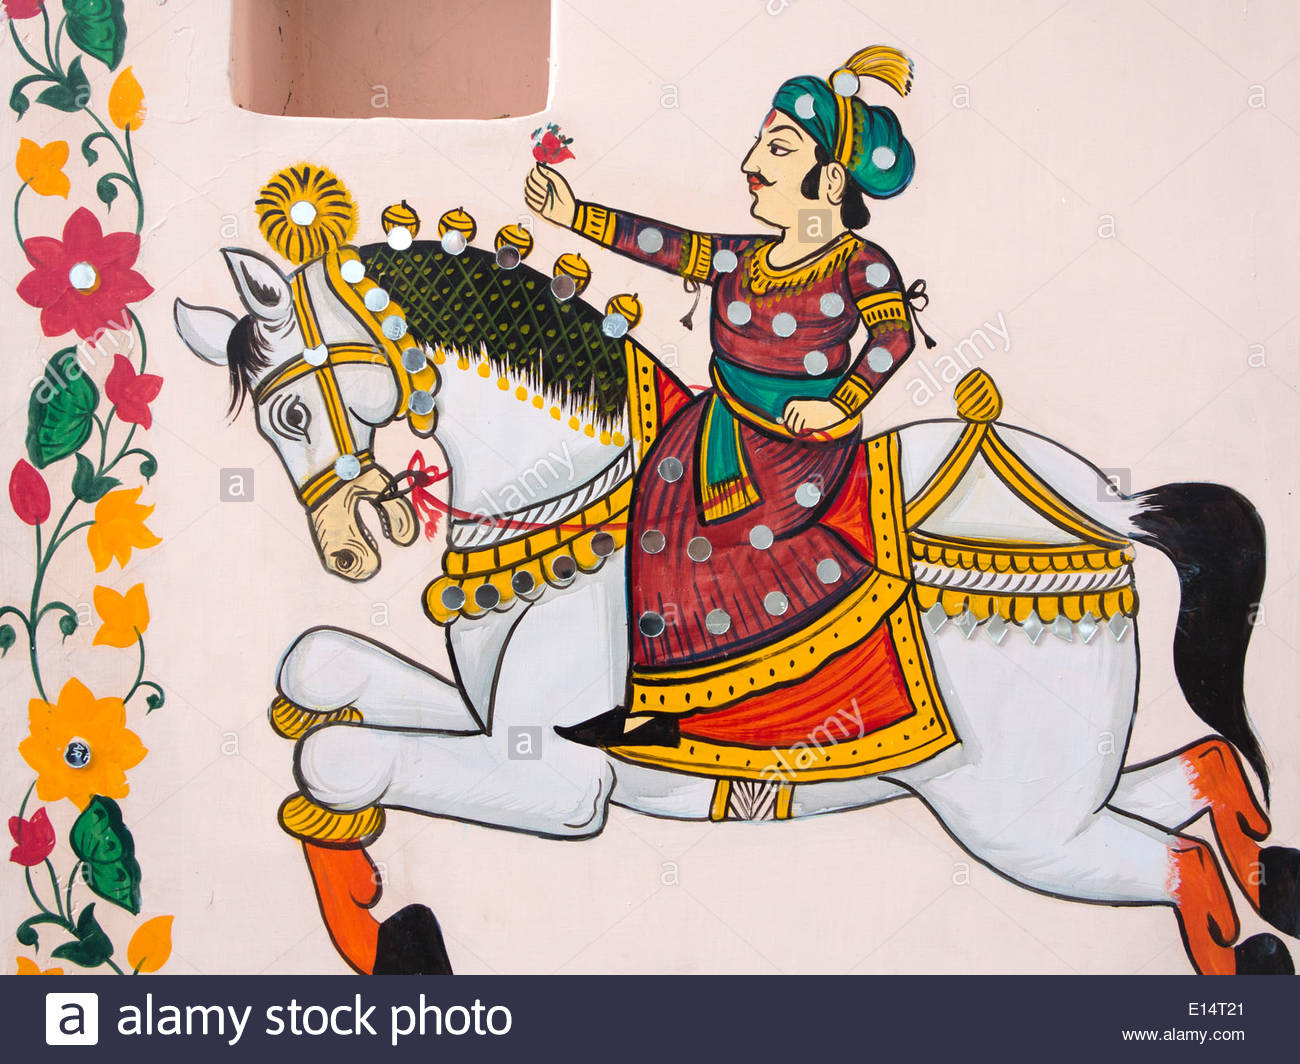 India, Rajasthan, Udaipur, Rajasthani Folk Art, Wall Painting Of.